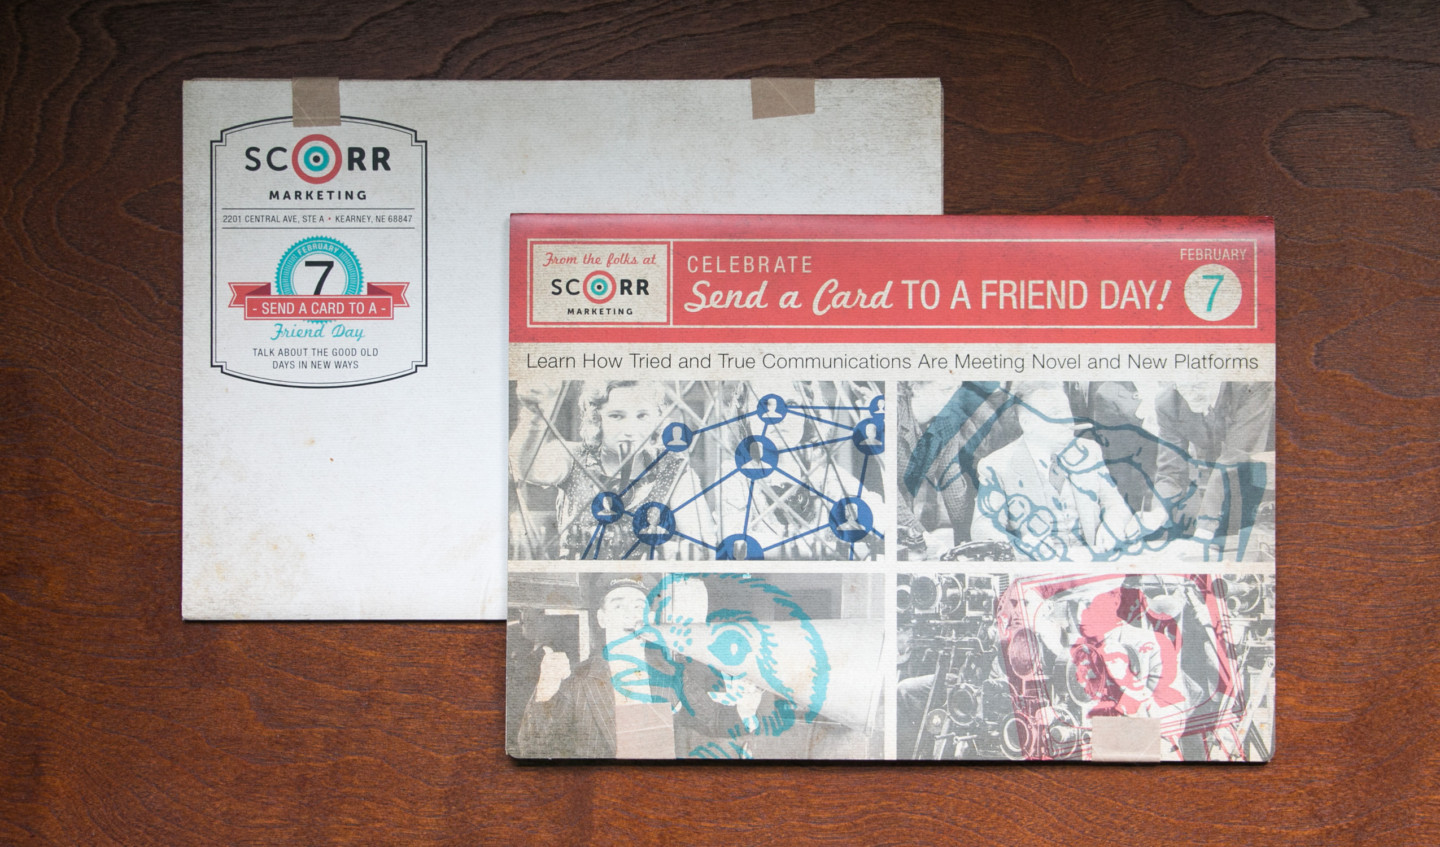 Send a Card to a Friend Day mailer